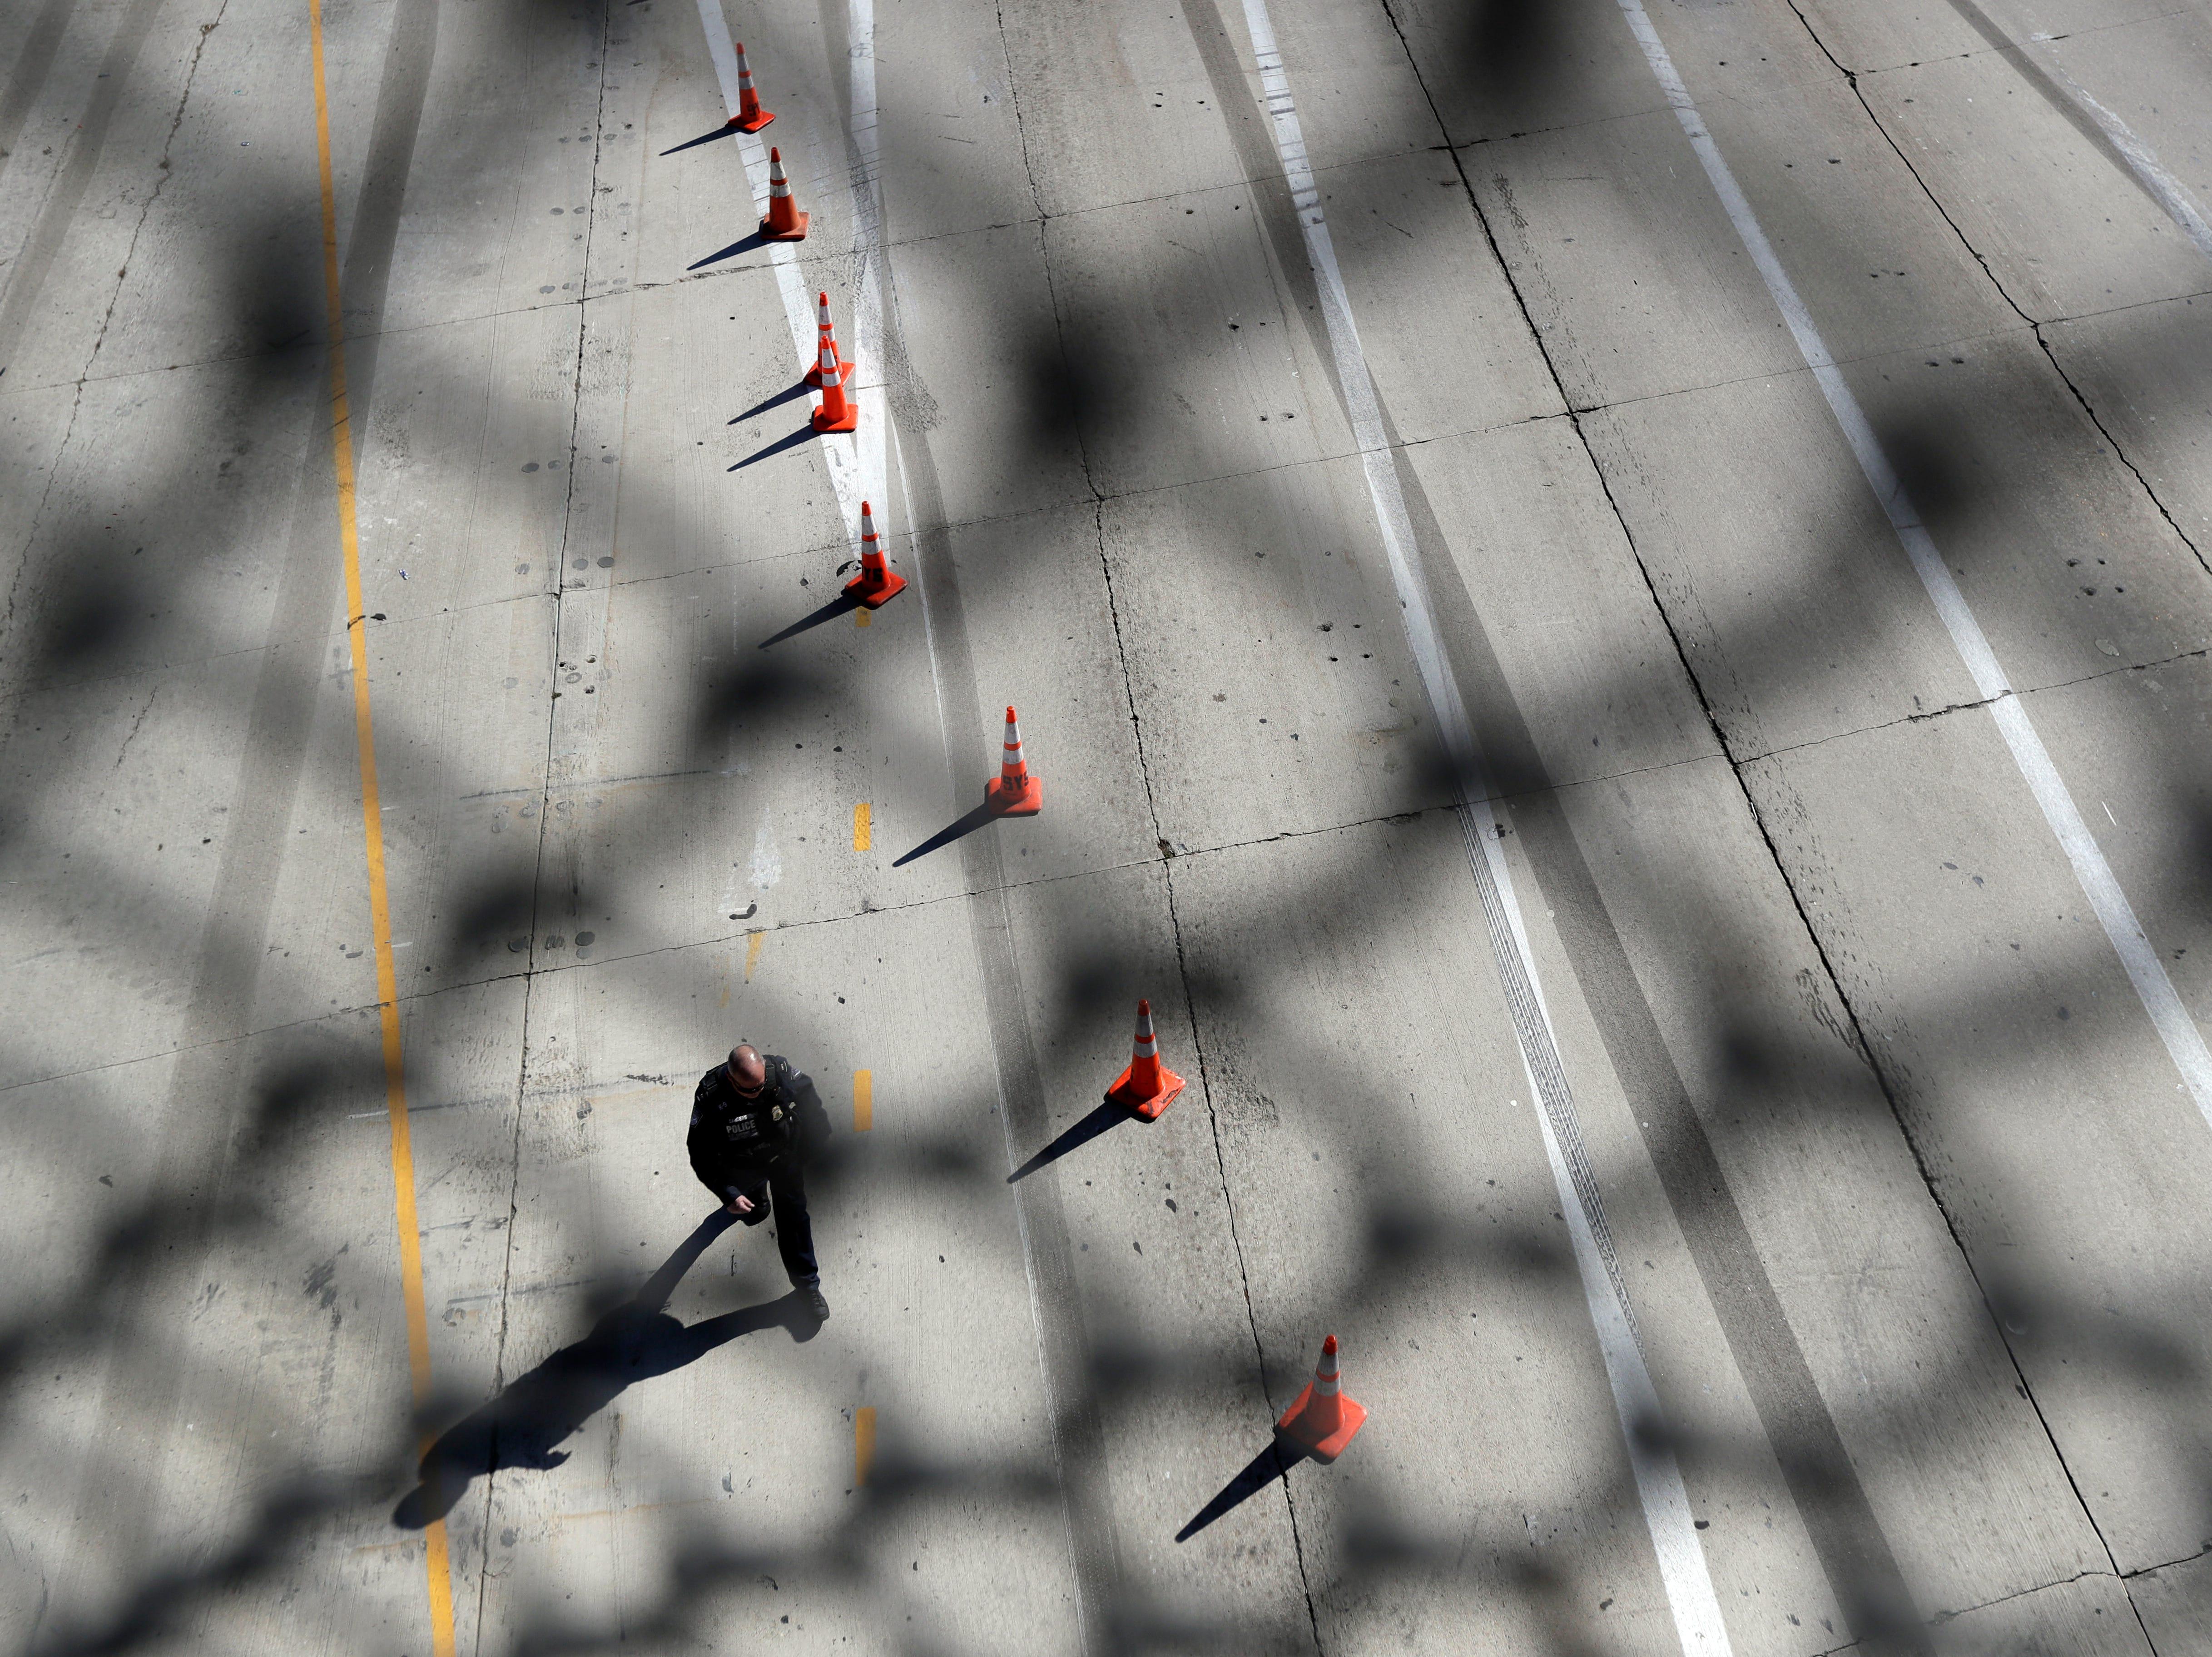 An official walks along the empty lanes of Interstate 5, where it reaches the San Ysidro port of entry, after closing the port Sunday, Nov. 25, 2018, in San Diego. Migrants approaching the U.S. border from Mexico were enveloped with tear gas Sunday after a few tried to breach the fence separating the two countries.